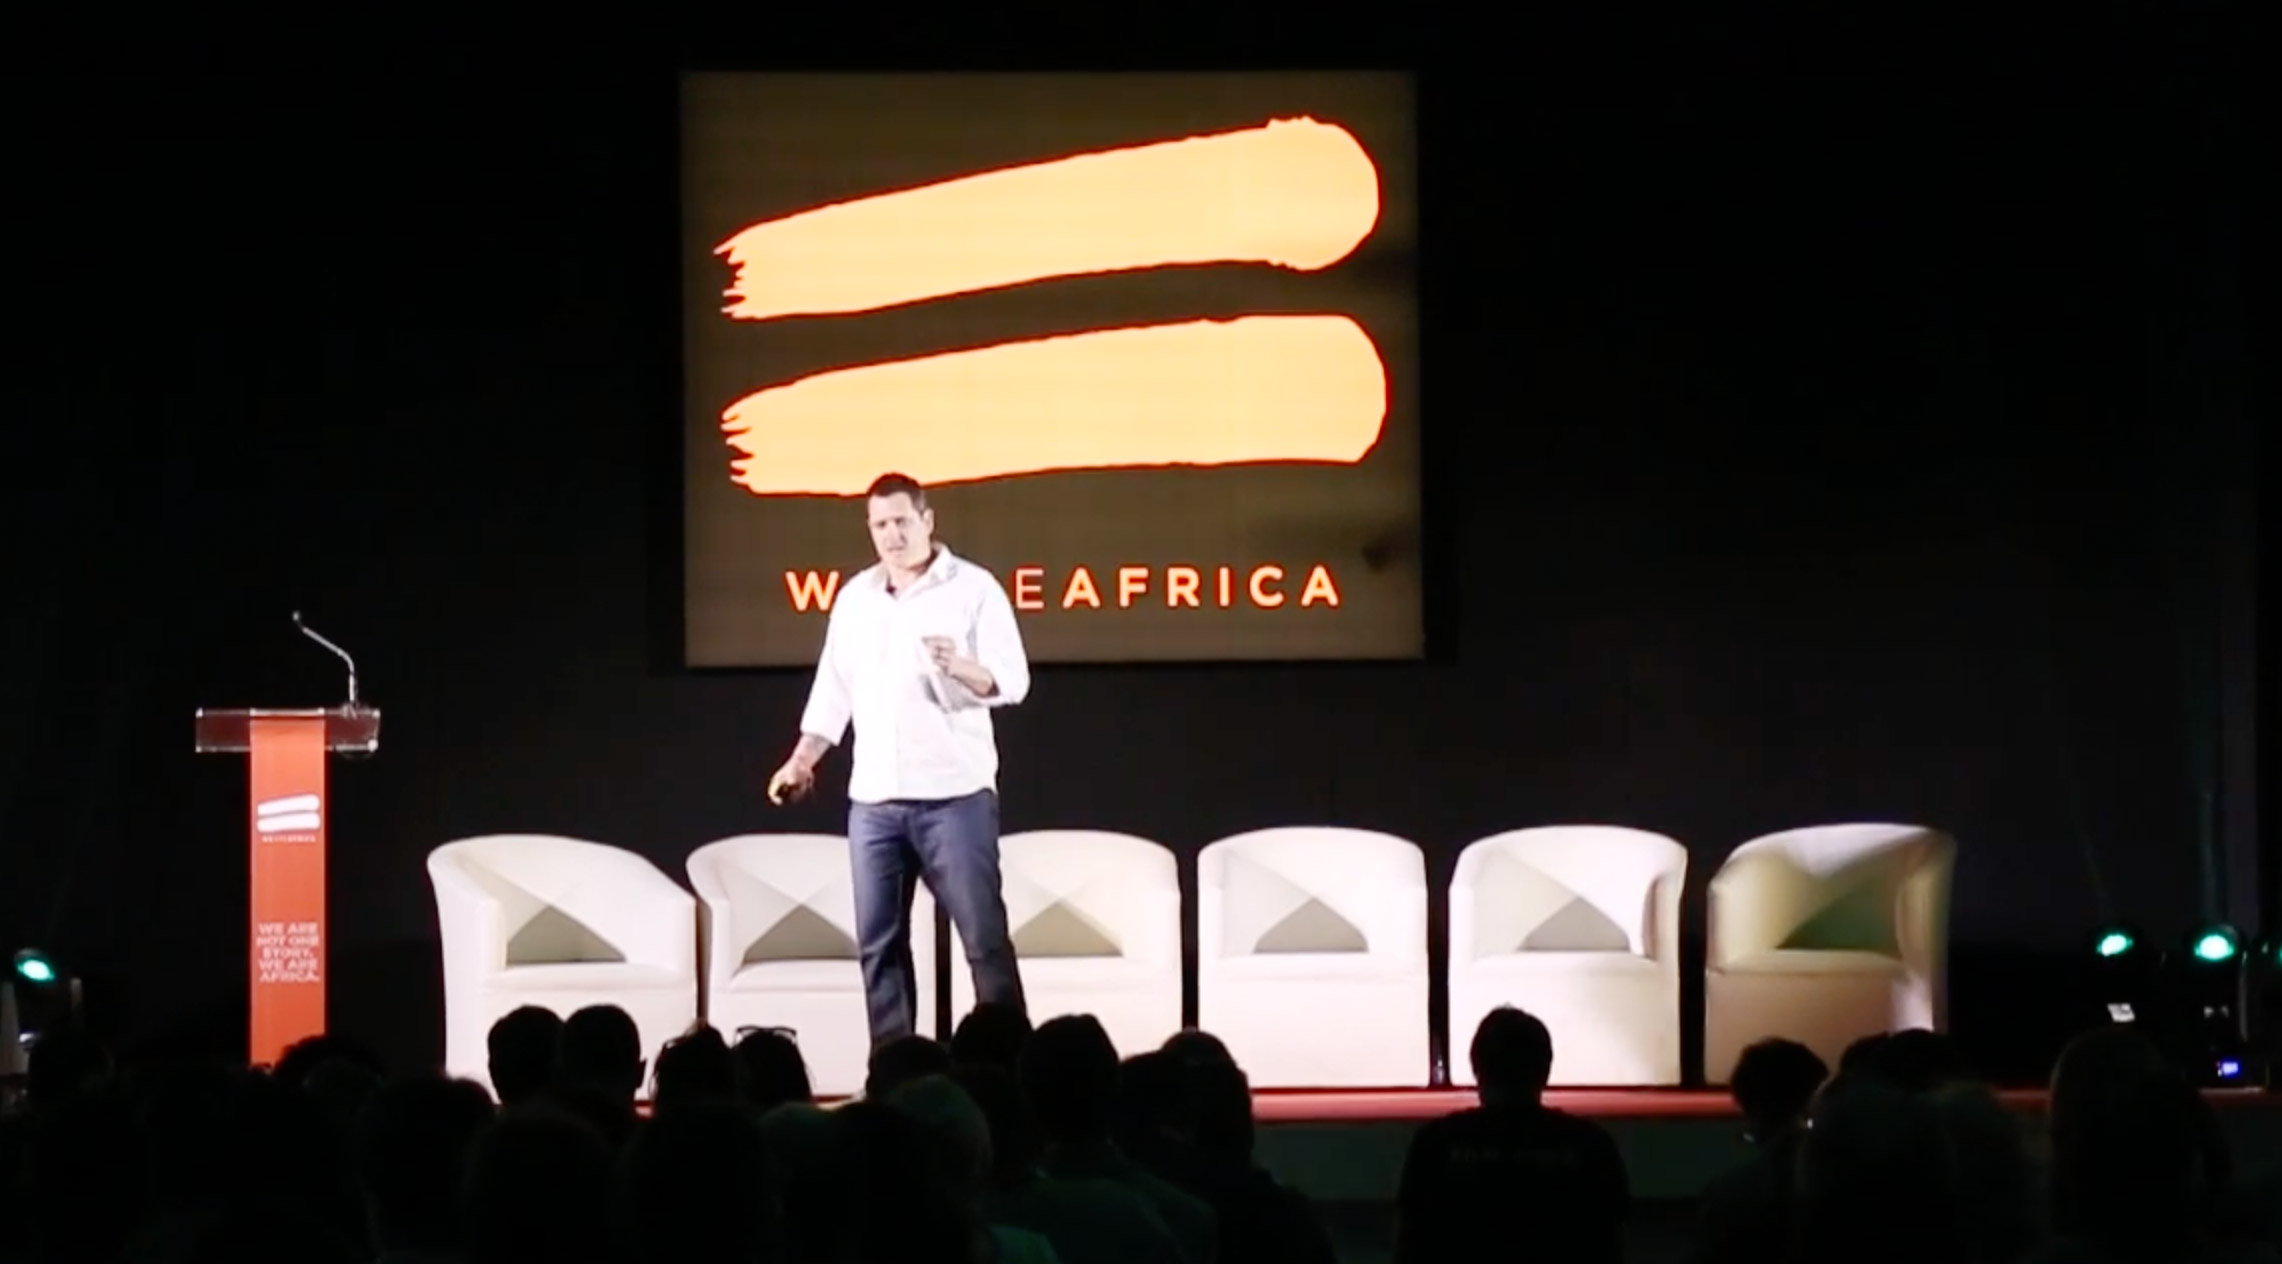 We Are Africa Conservation Lab 2015 - Damien Mander